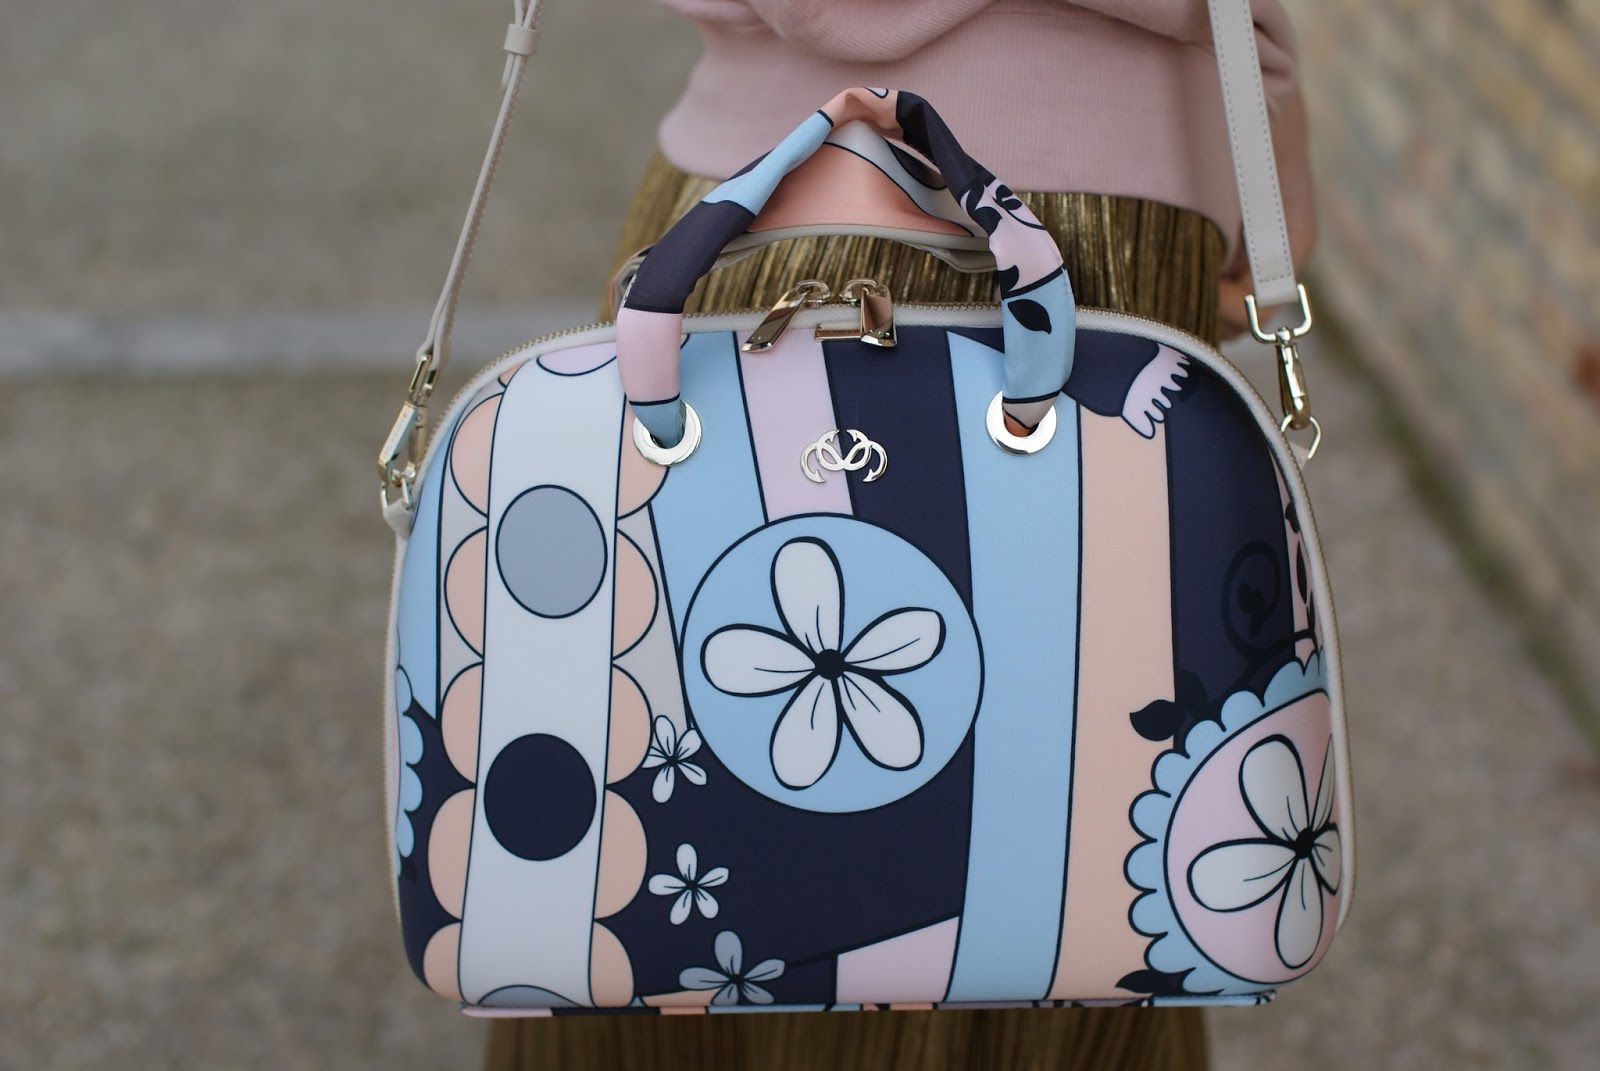 Salce 197 Movida Pattern bag in pastel colors on Fashion and Cookies fashion blog, fashion blogger style